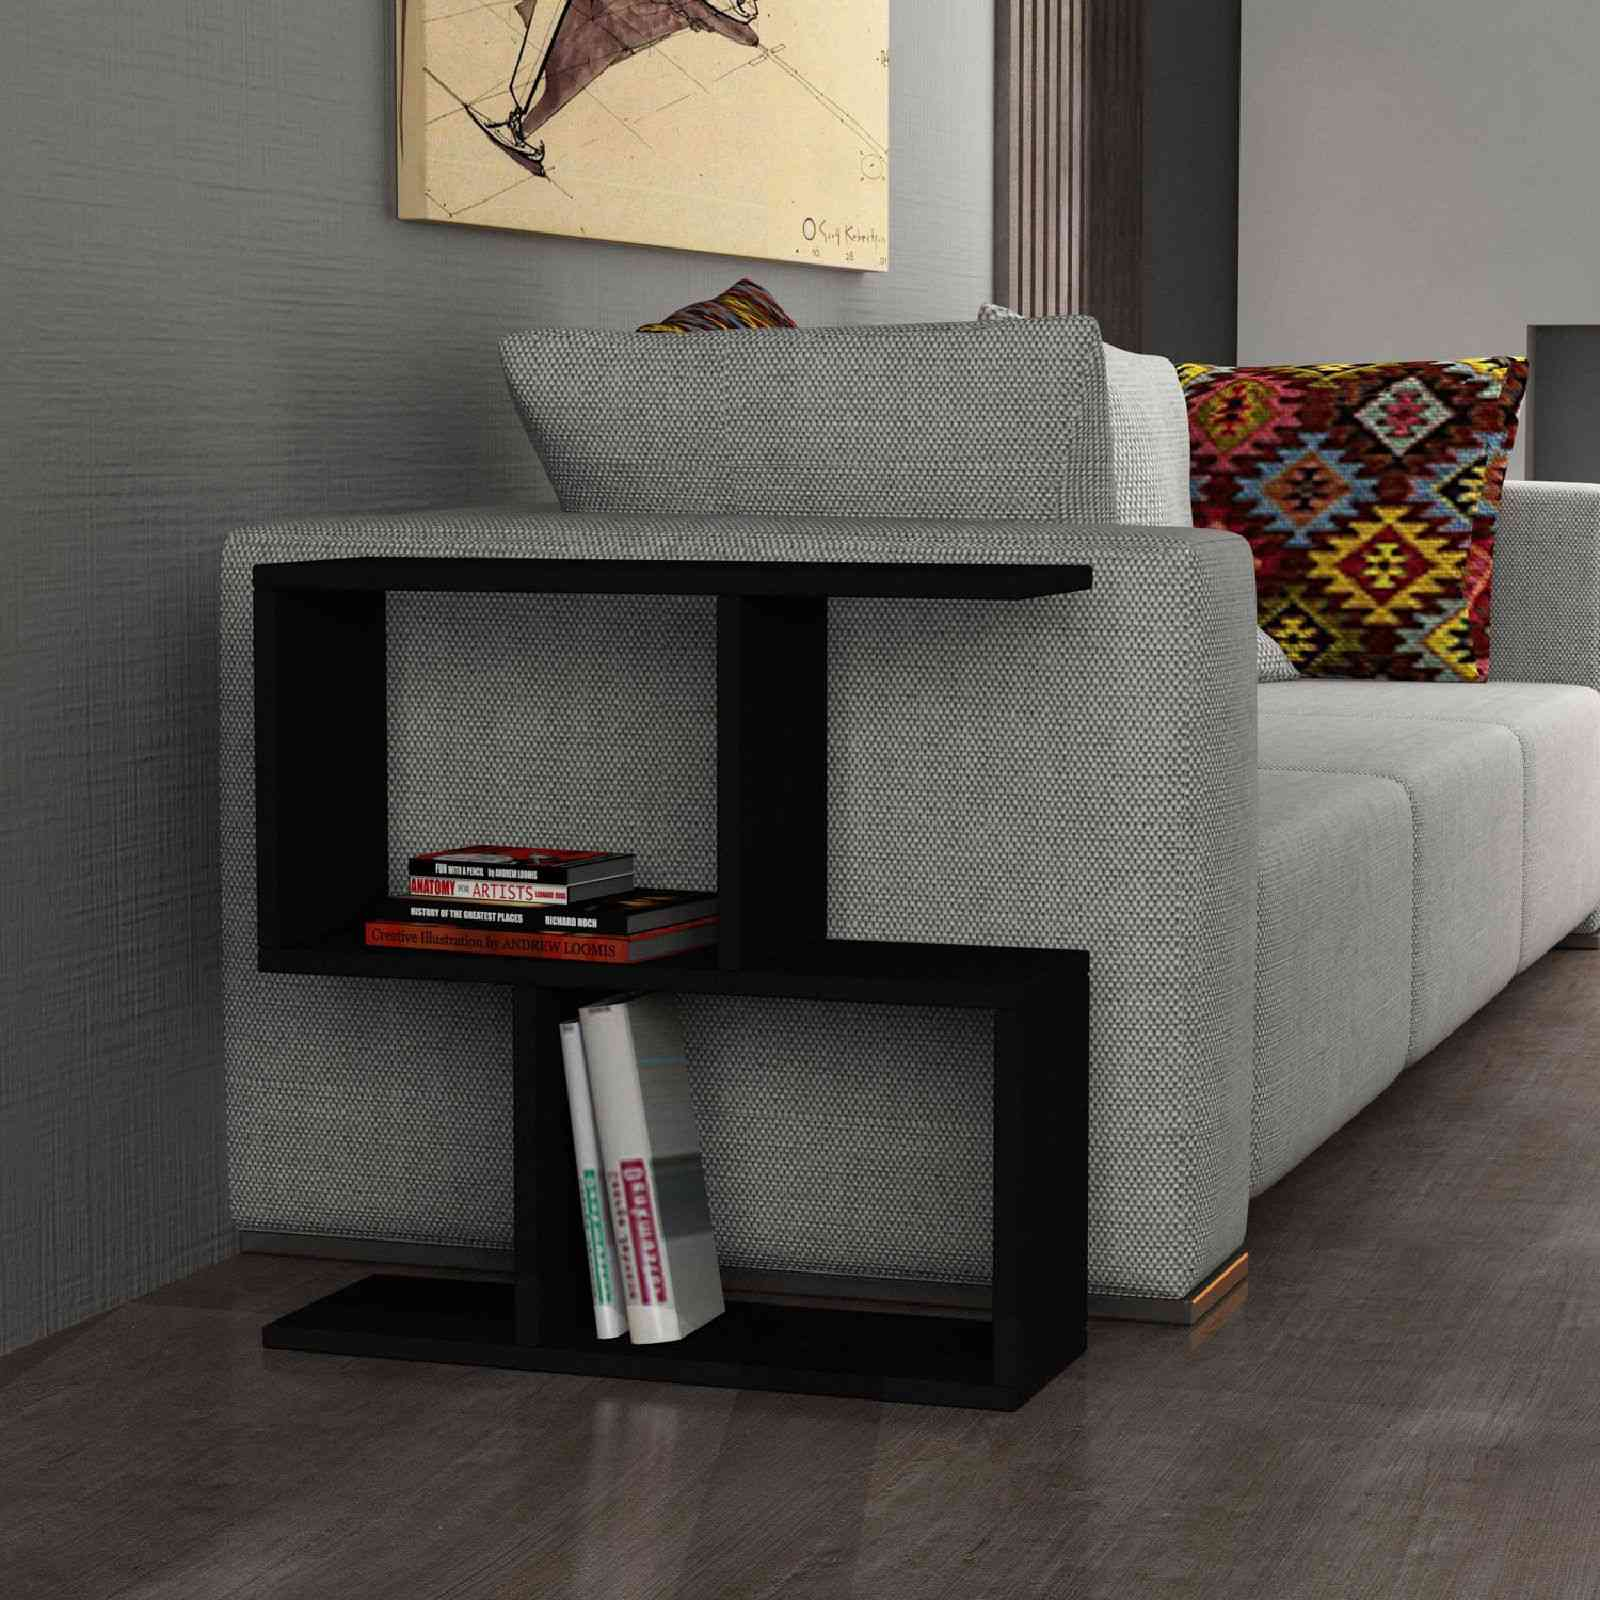 design line meuble d 39 appoint noir brandalley. Black Bedroom Furniture Sets. Home Design Ideas